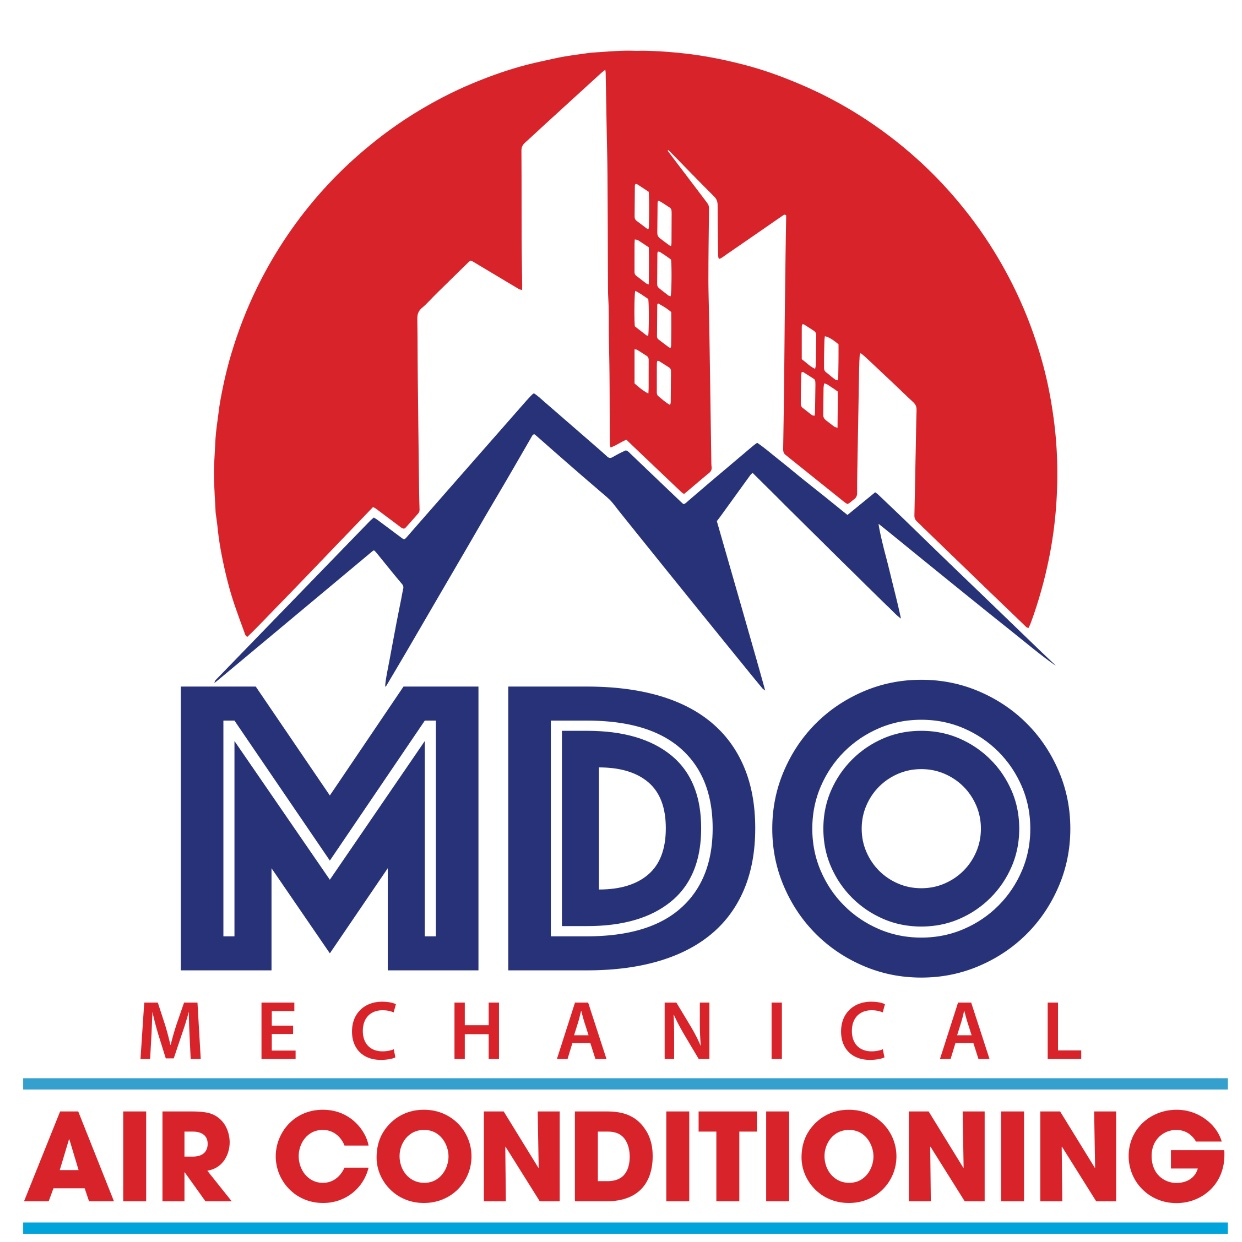 Florida state certified class a air conditioning contractor and epa - Mdo Mechanical Air Conditioning Refrigeration Services Miami Fl 33155 Yp Com